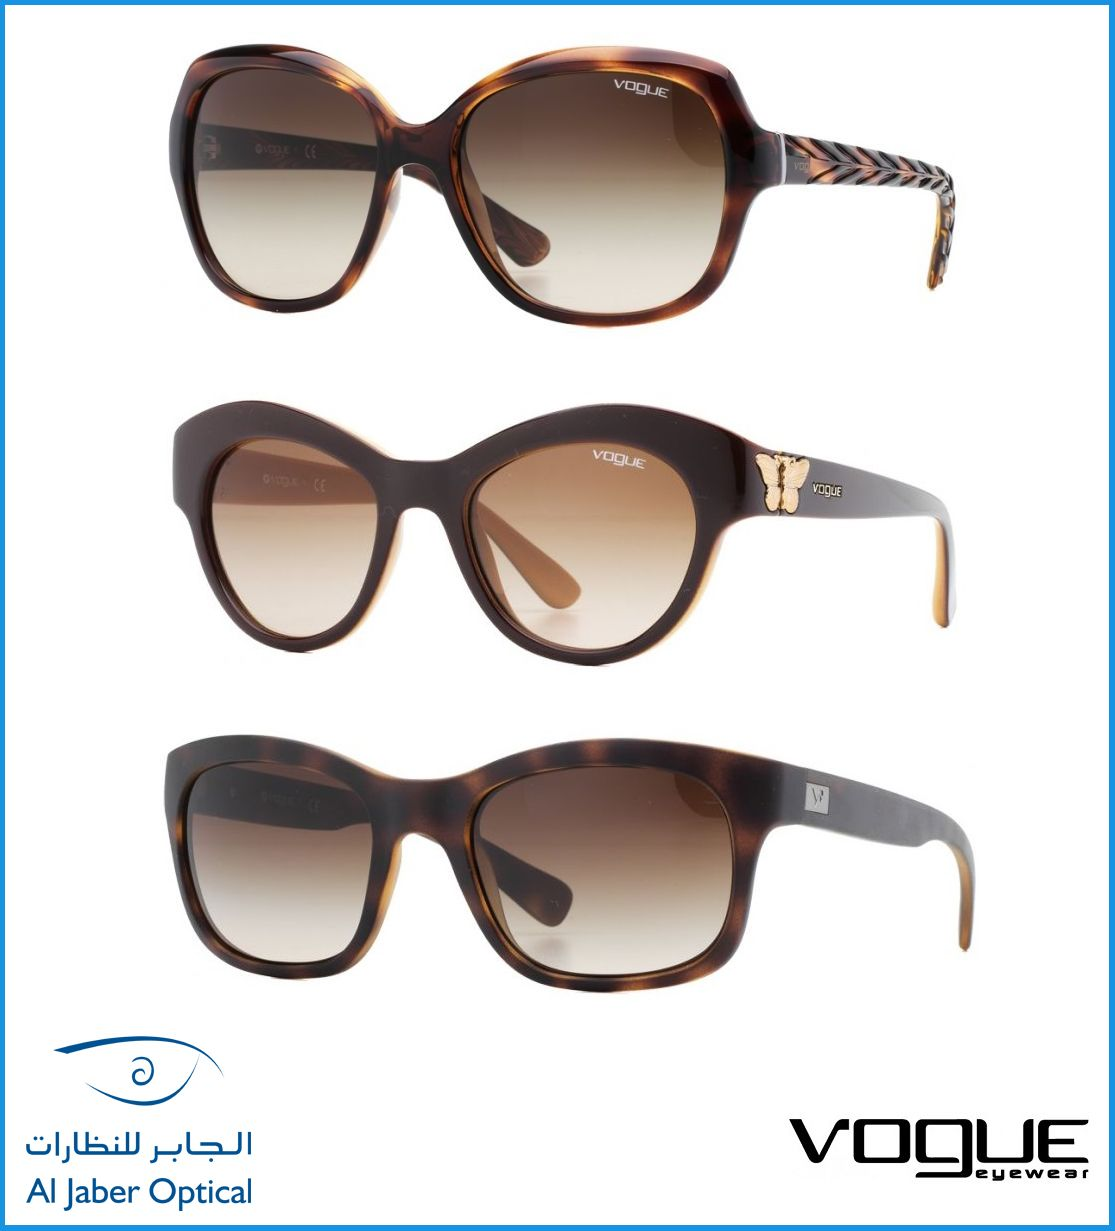 Discover Latest Vogue Eyewear Interpreted By The Imaginative Minds Of Selected Stylists Rayban Sunglasses Aviators Vogue Eyewear Sunglasses